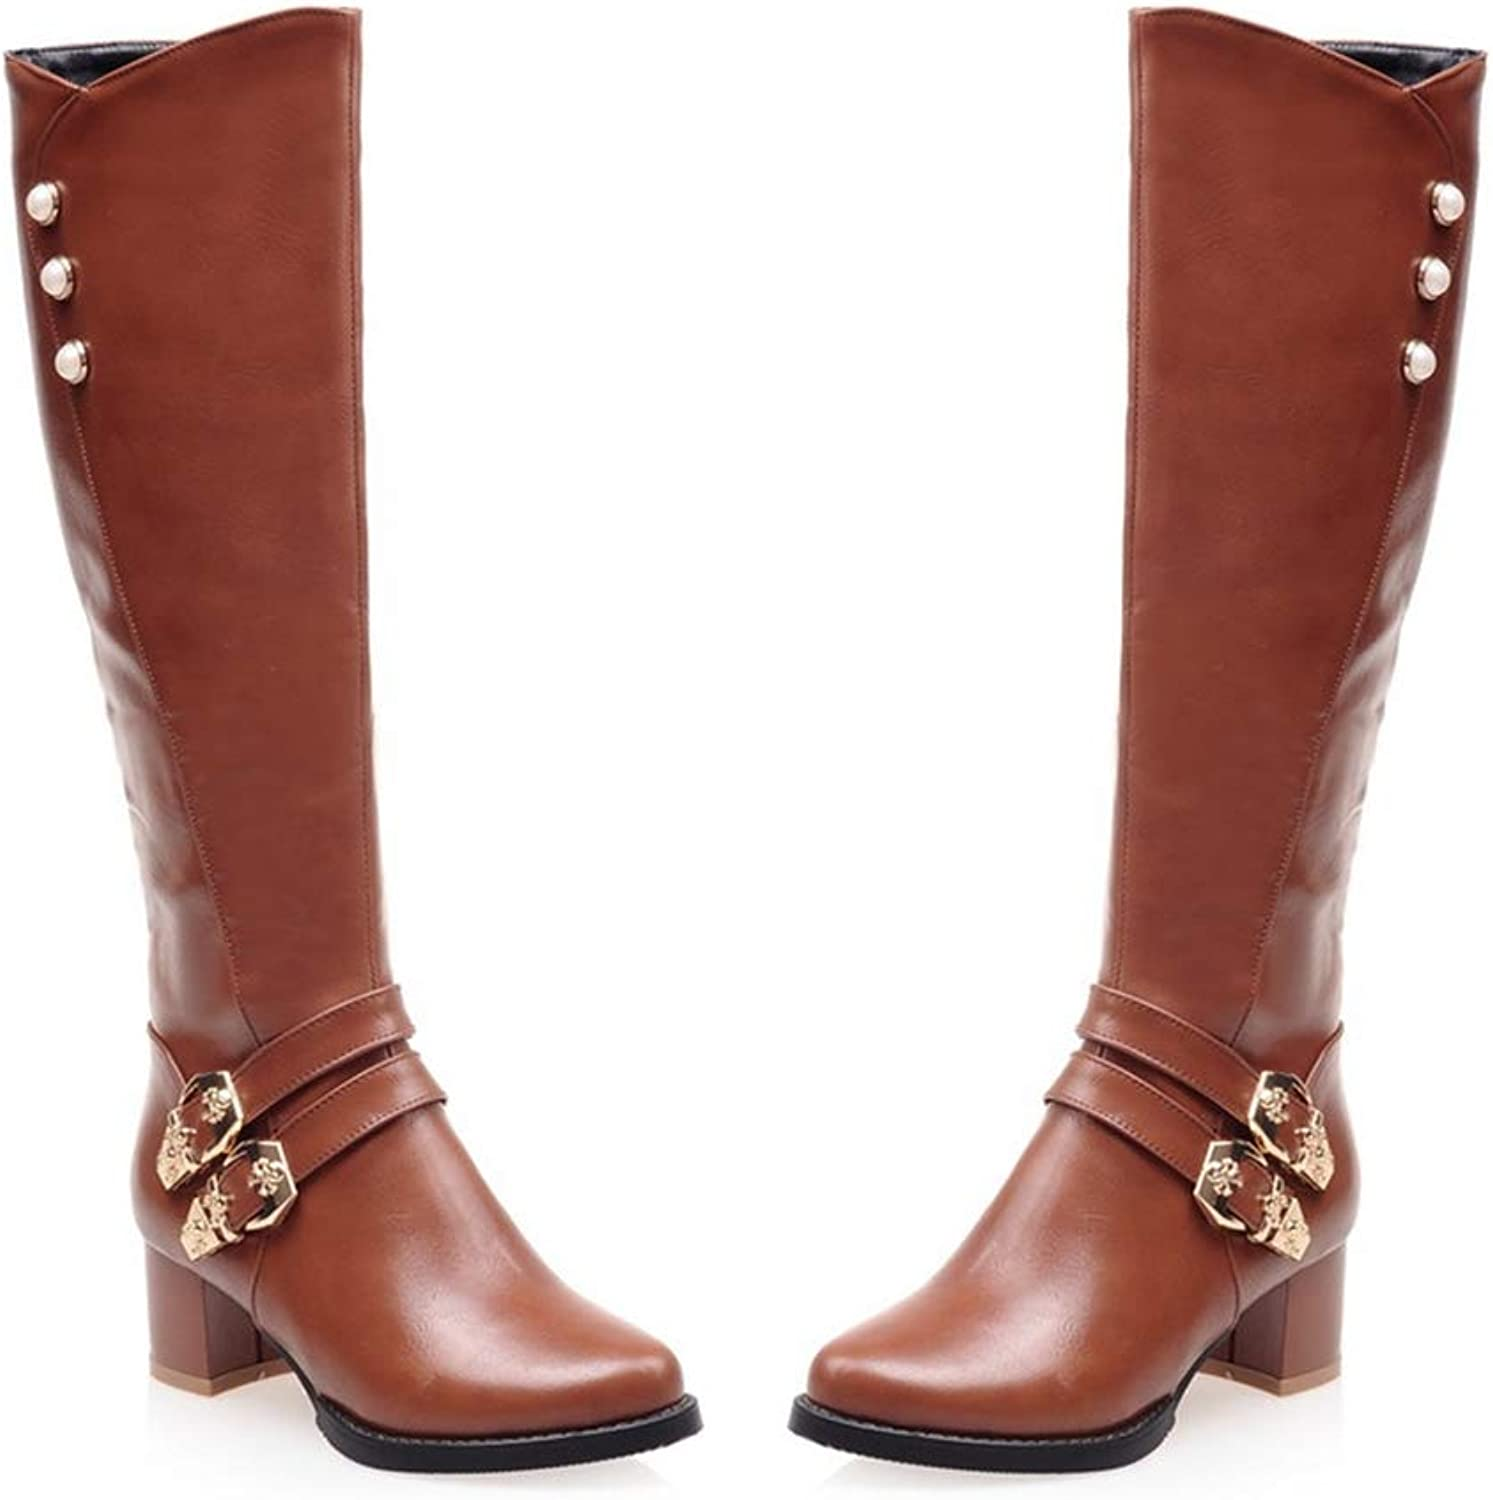 Sam Carle Women Boots, Back Zipper Belt Buckle Thick Heel Round Toe Knee-High Boots